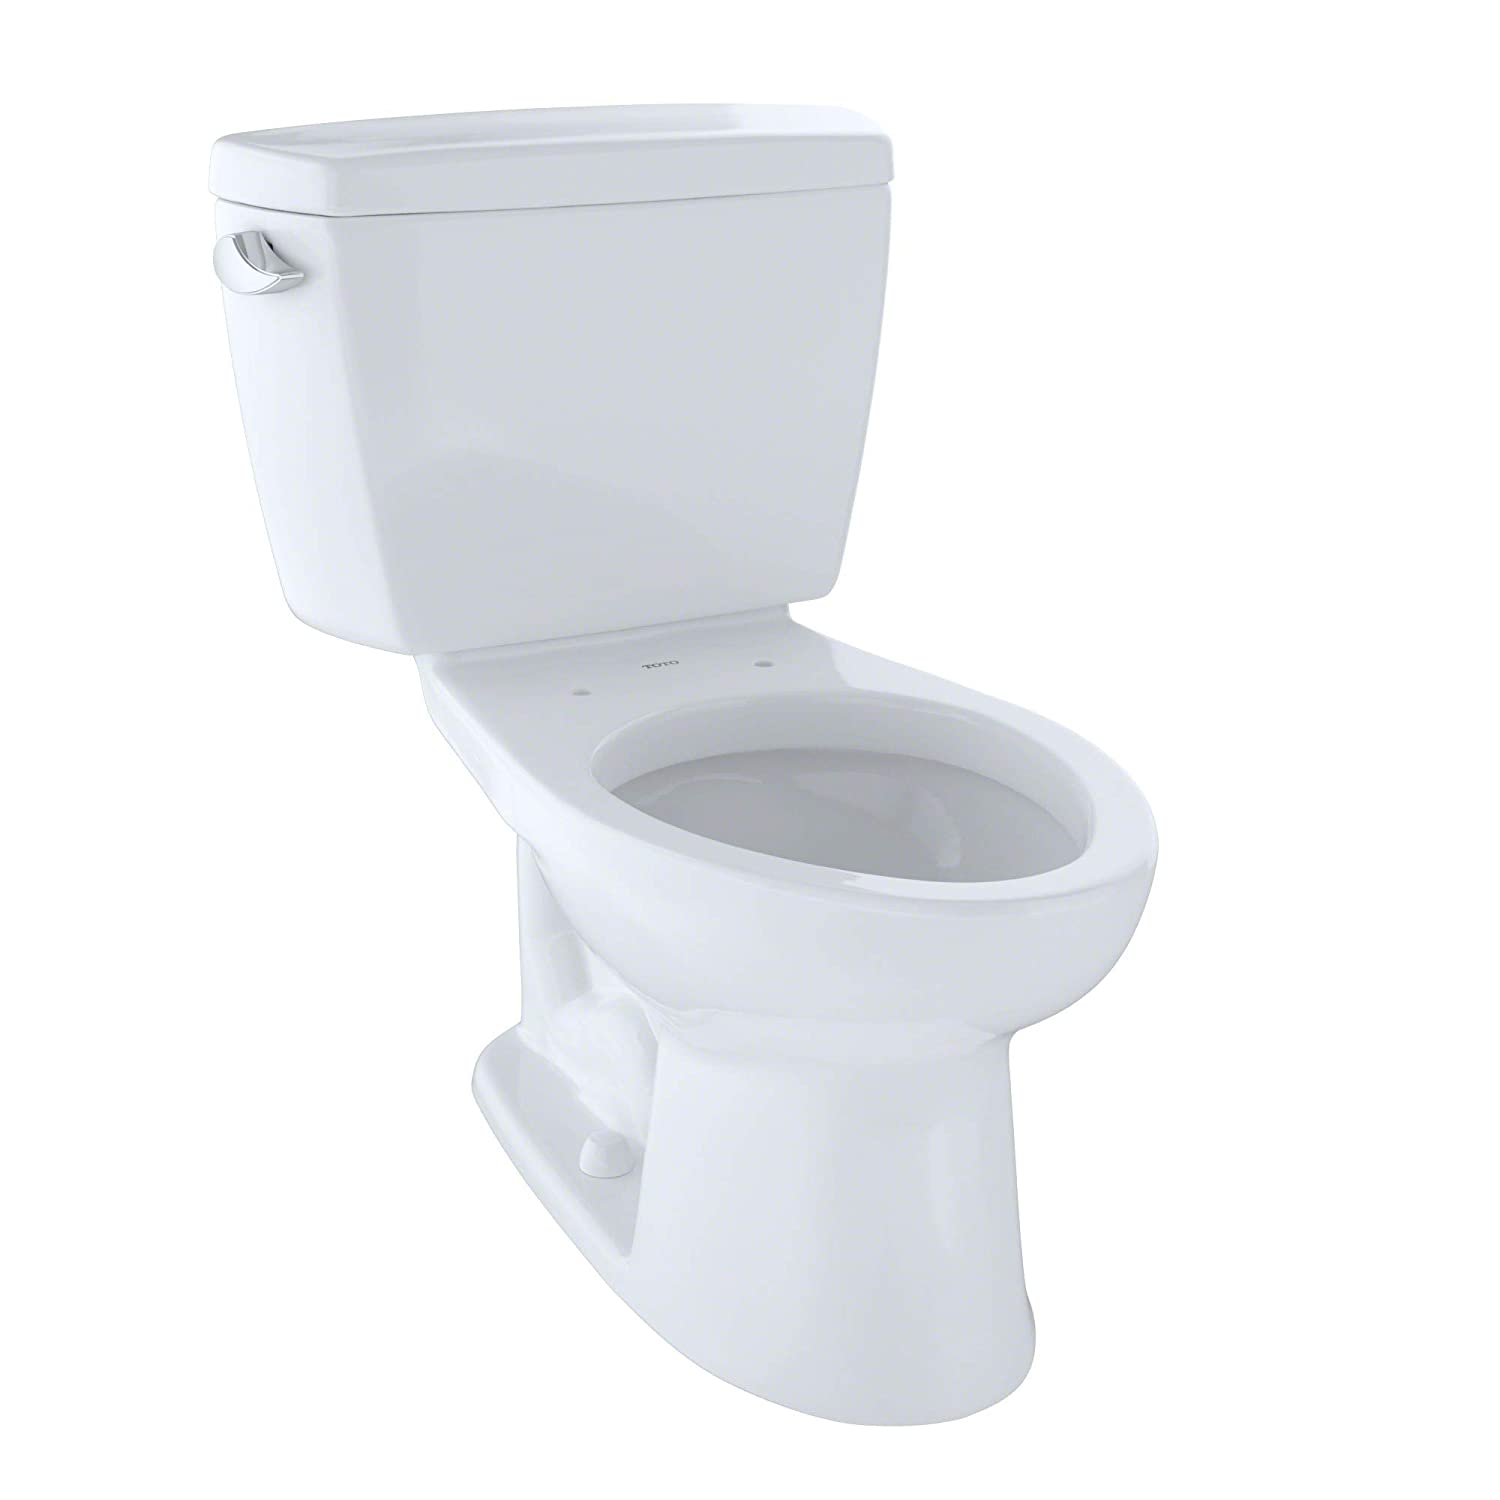 Best Toilets Under $200, $300 to $400 Reviews in 2020 9